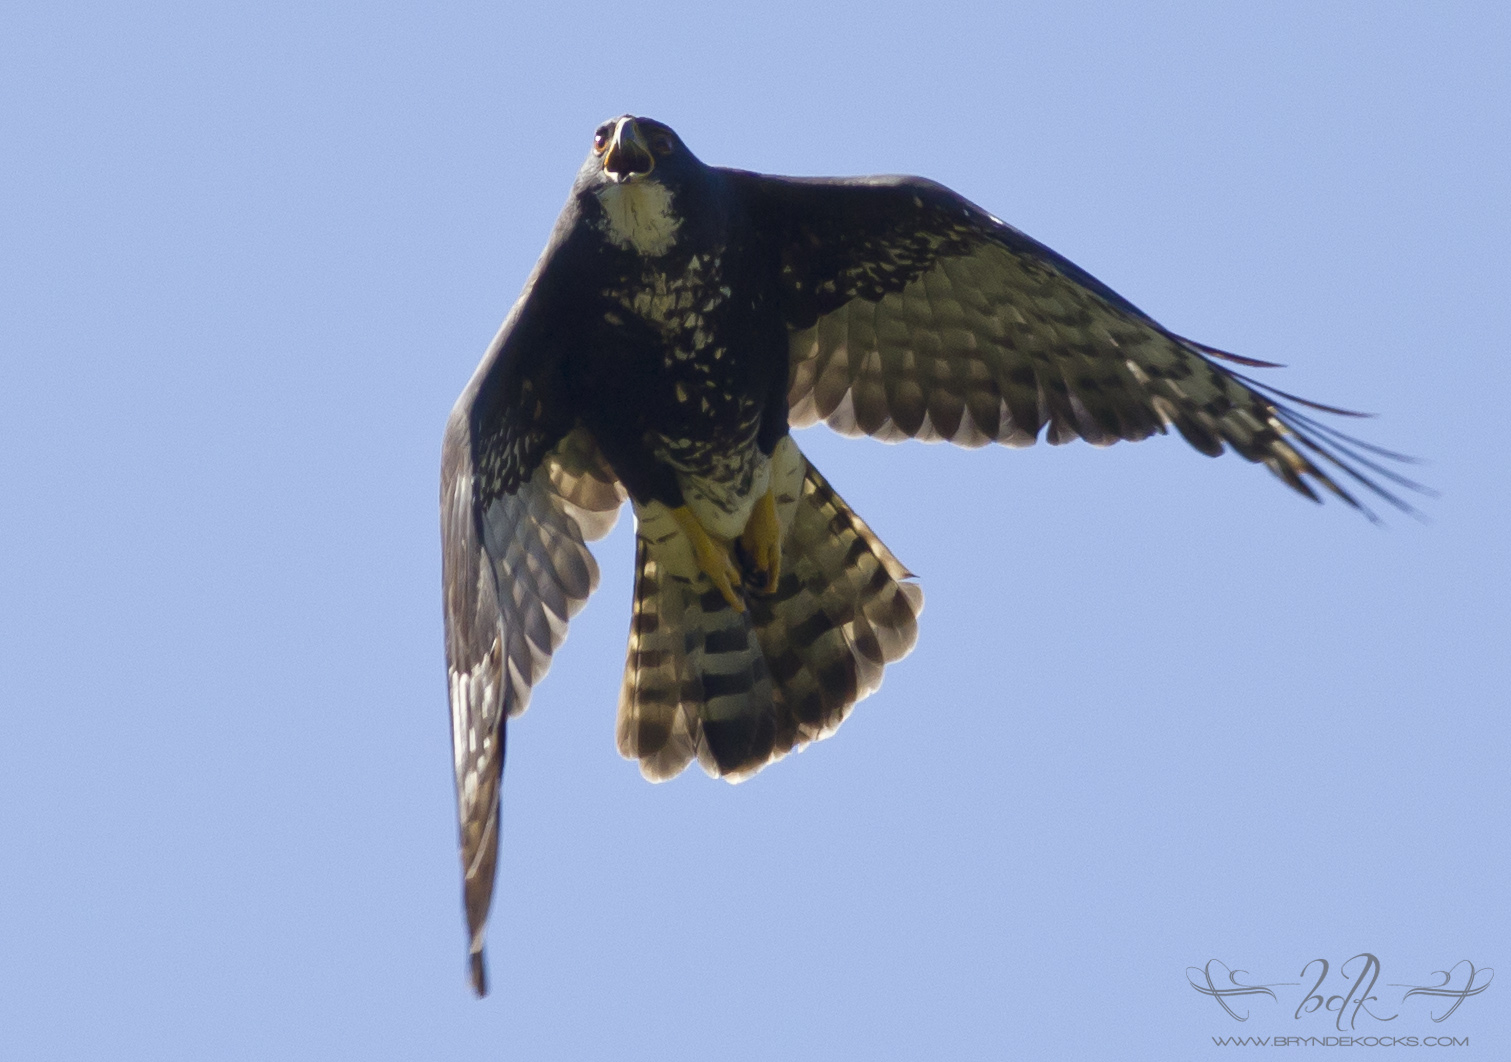 Black Sparrowhawk Calling While Flying Overhead